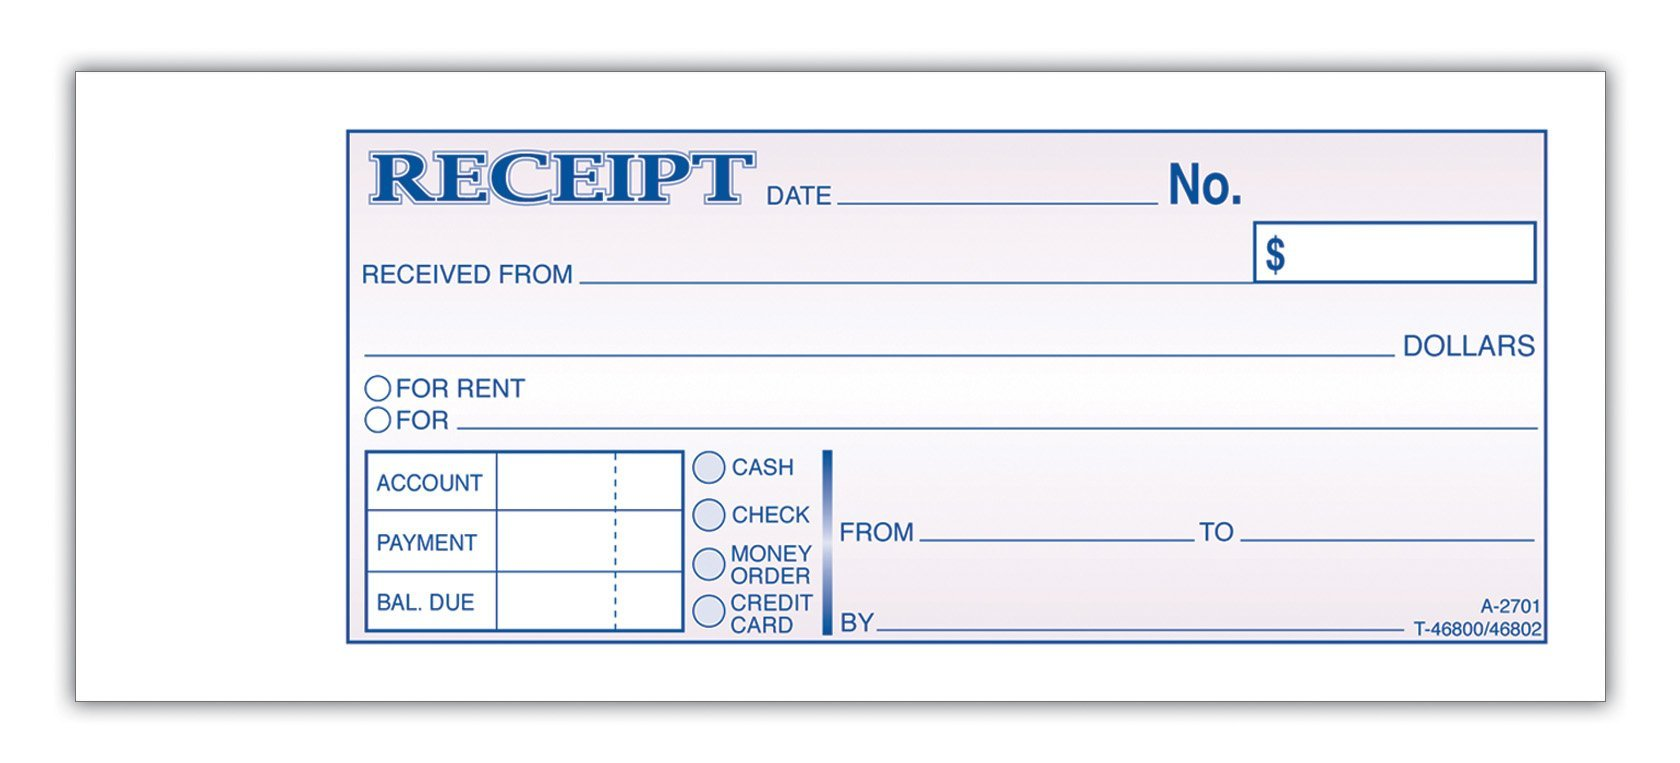 receipt for rent – Rental Payment Receipt